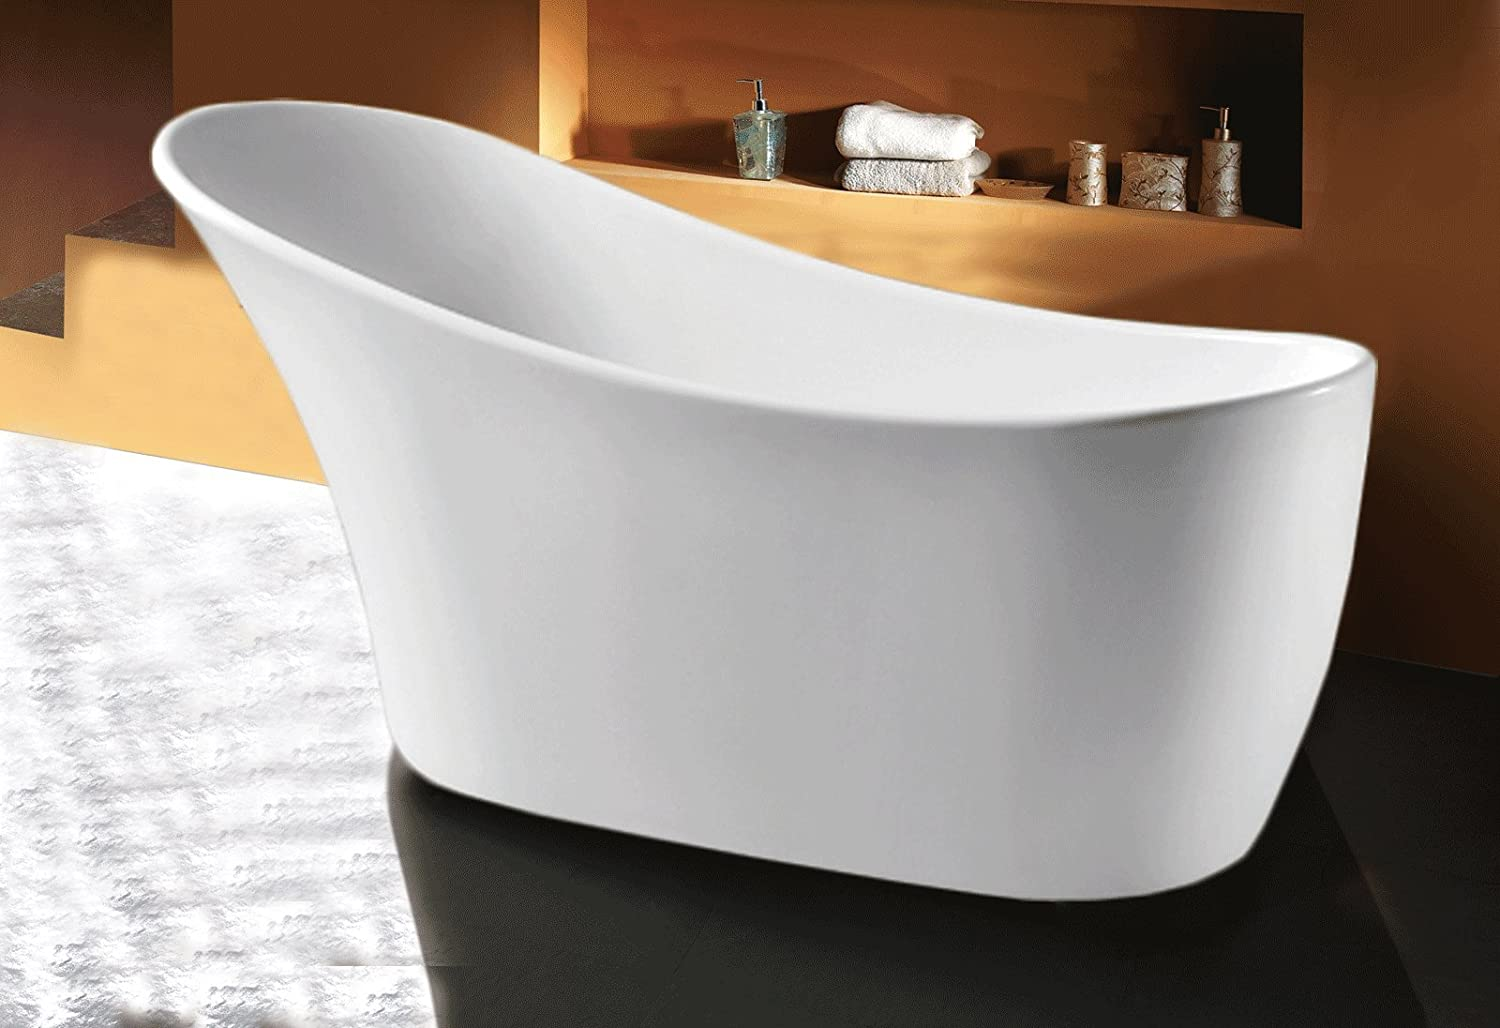 Top 10 best free standing acrylic bathtubs 2016 2017 on for Bathtub material comparison